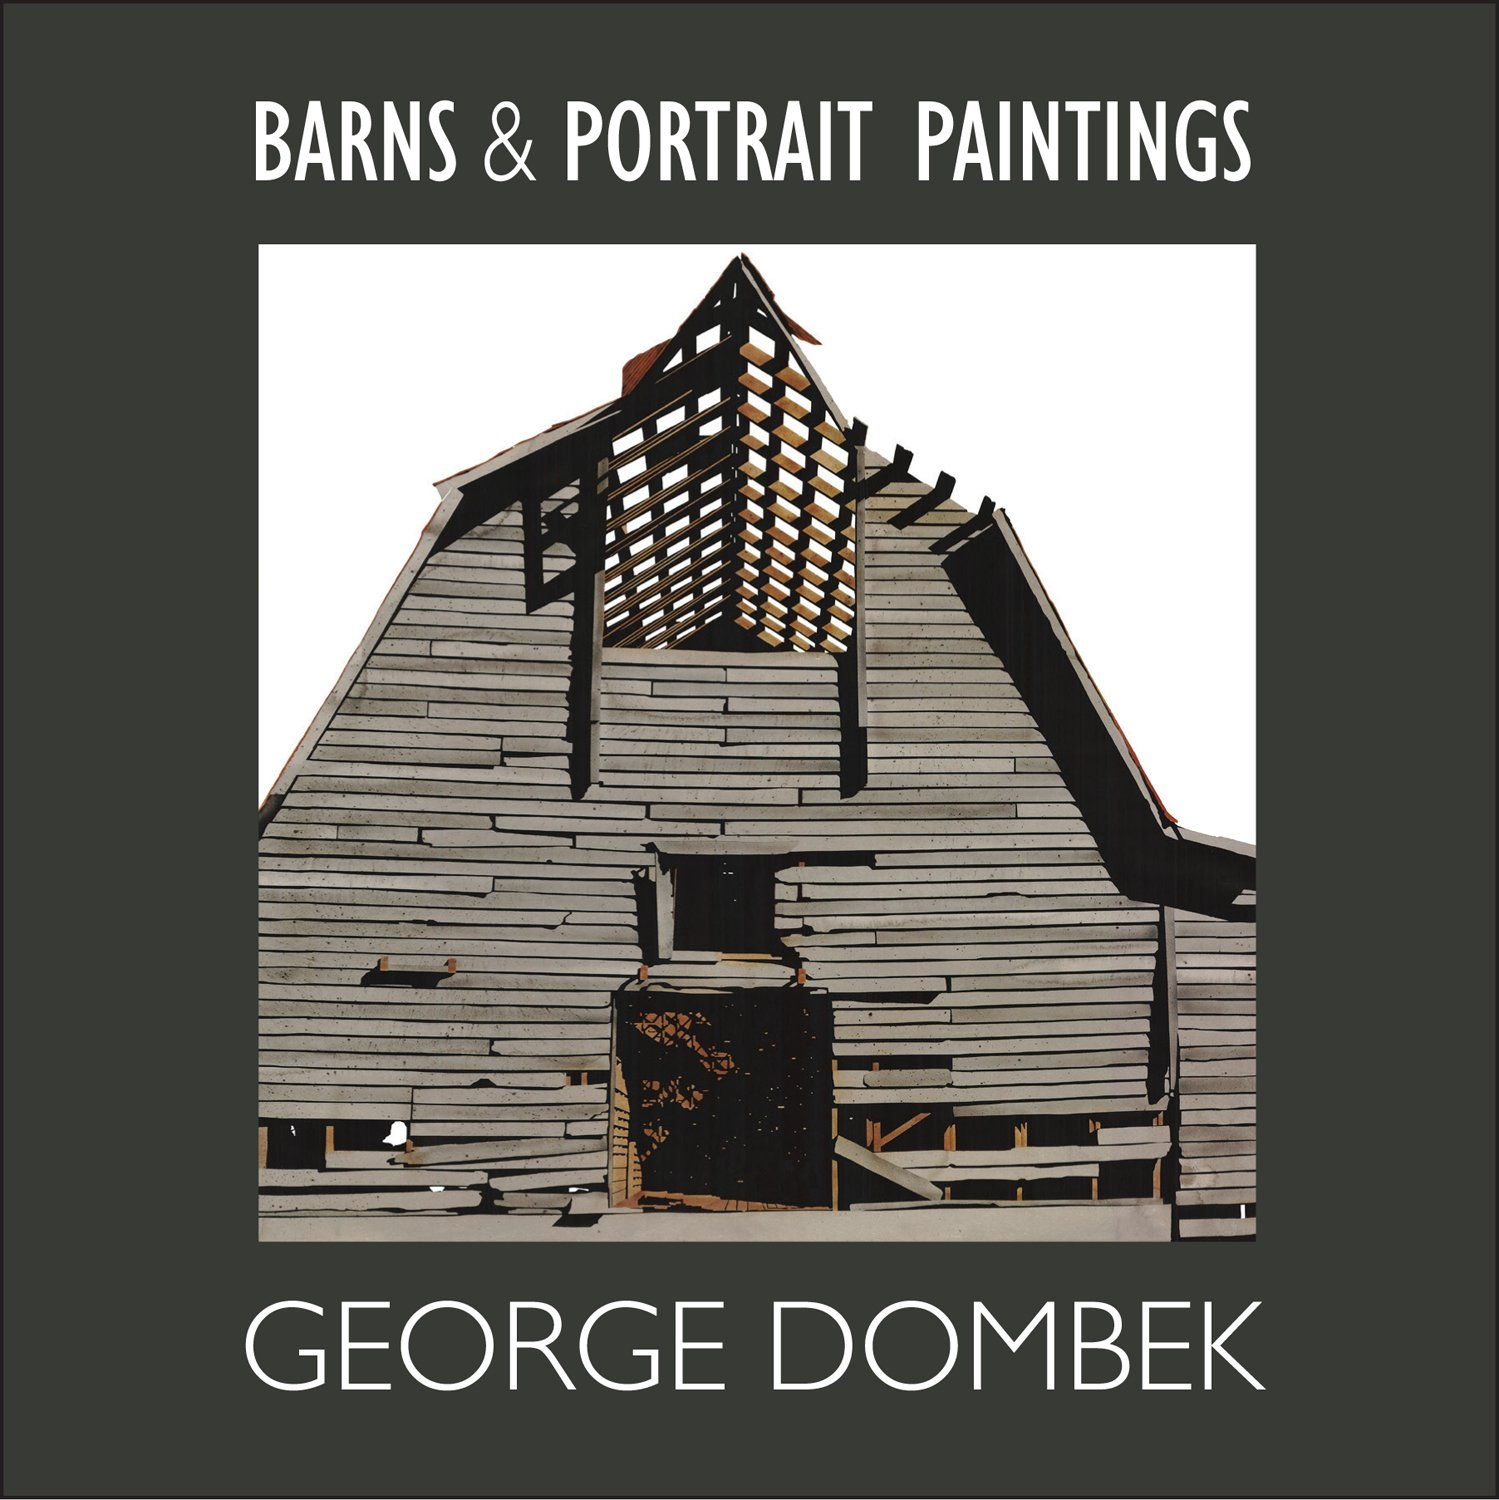 Barns and Portrait Paintings (Fay Jones Collaborative Series) by University of Arkansas Press (Image #1)